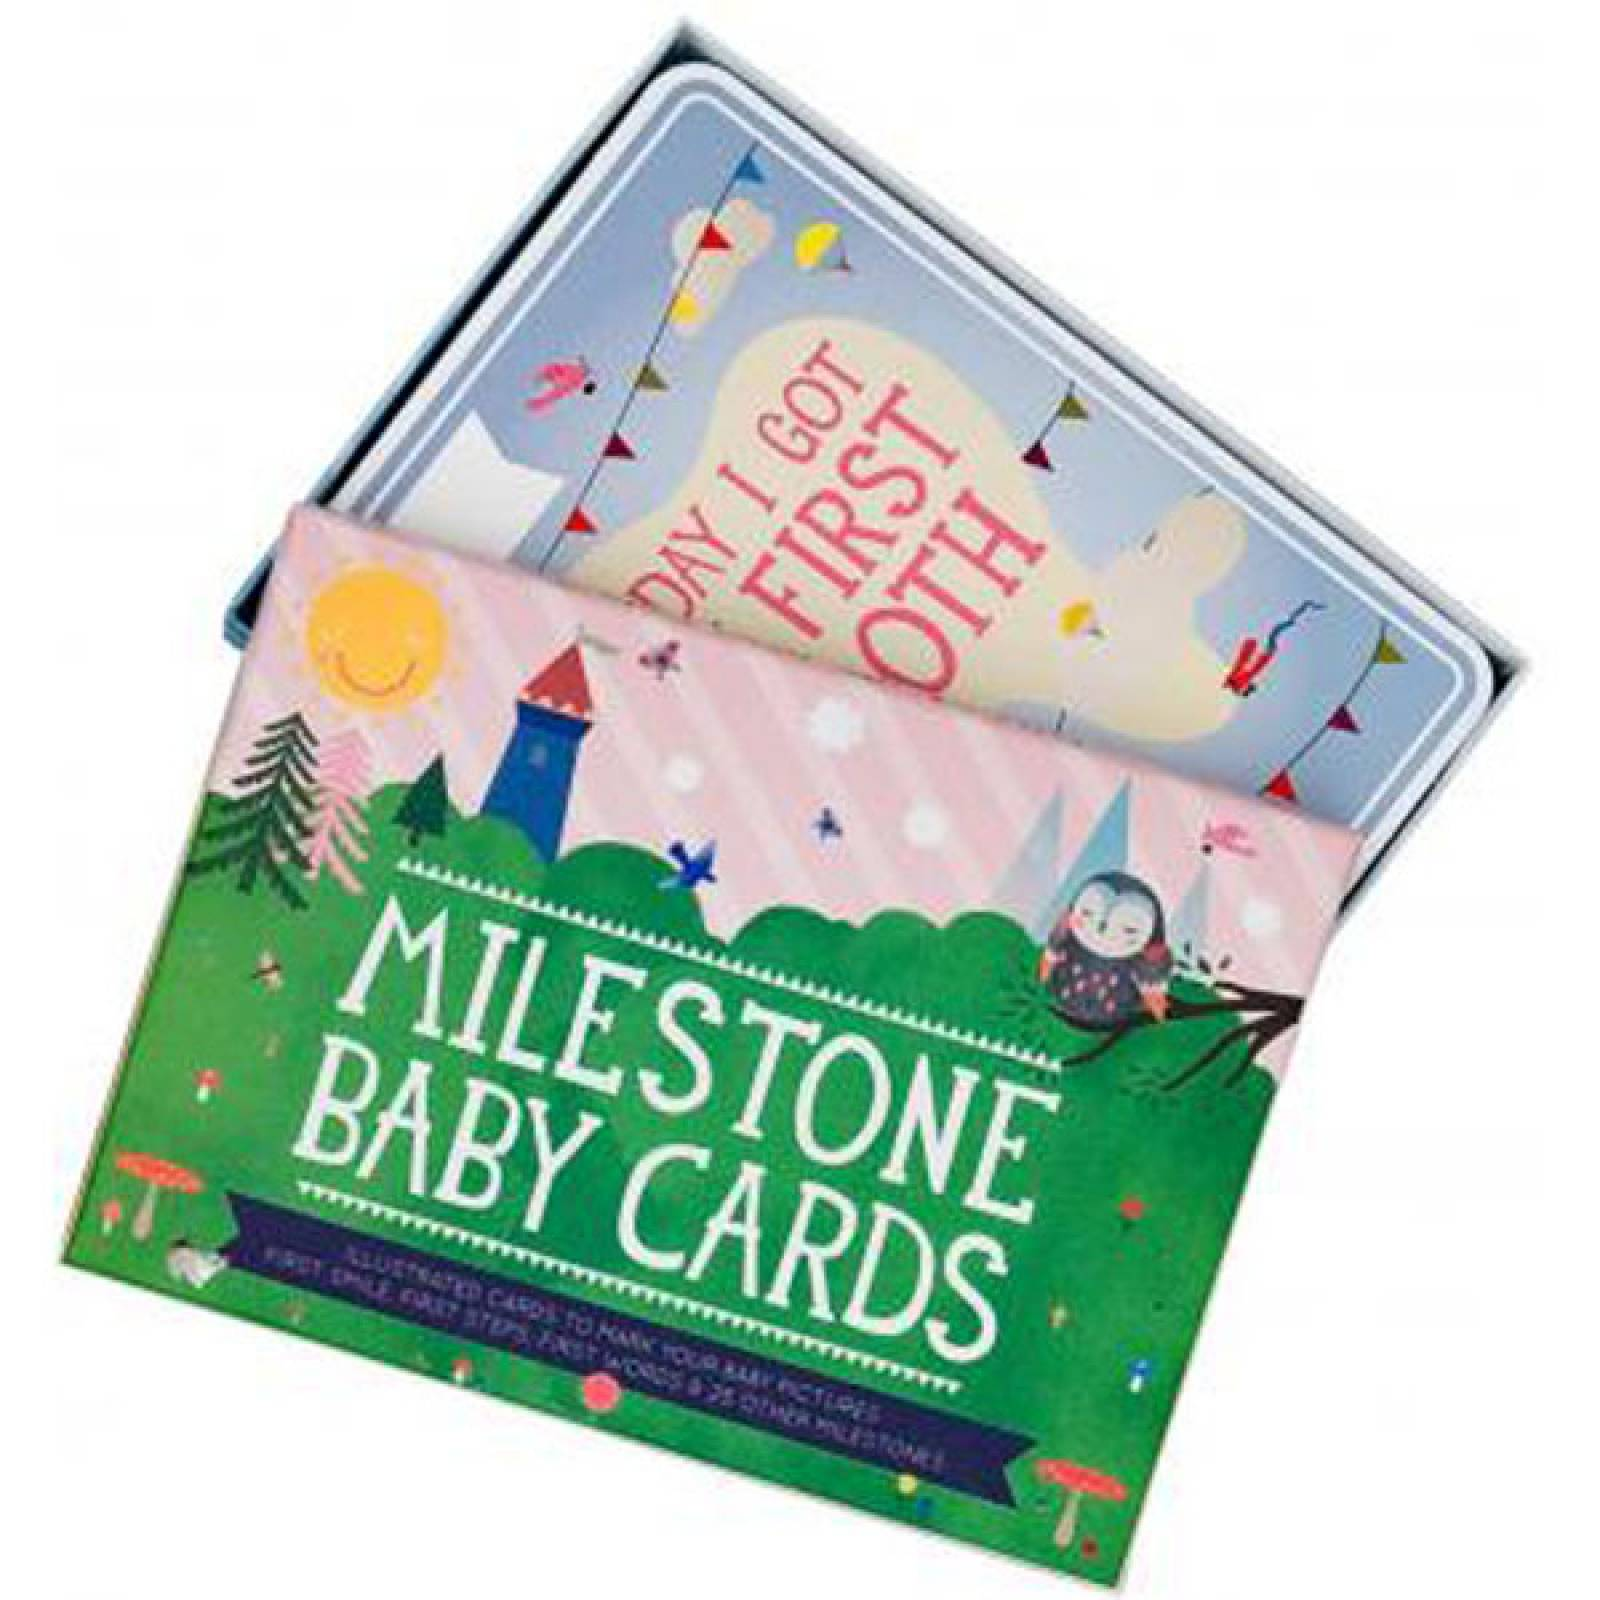 Milestone Baby Cards By Beci Orpin thumbnails